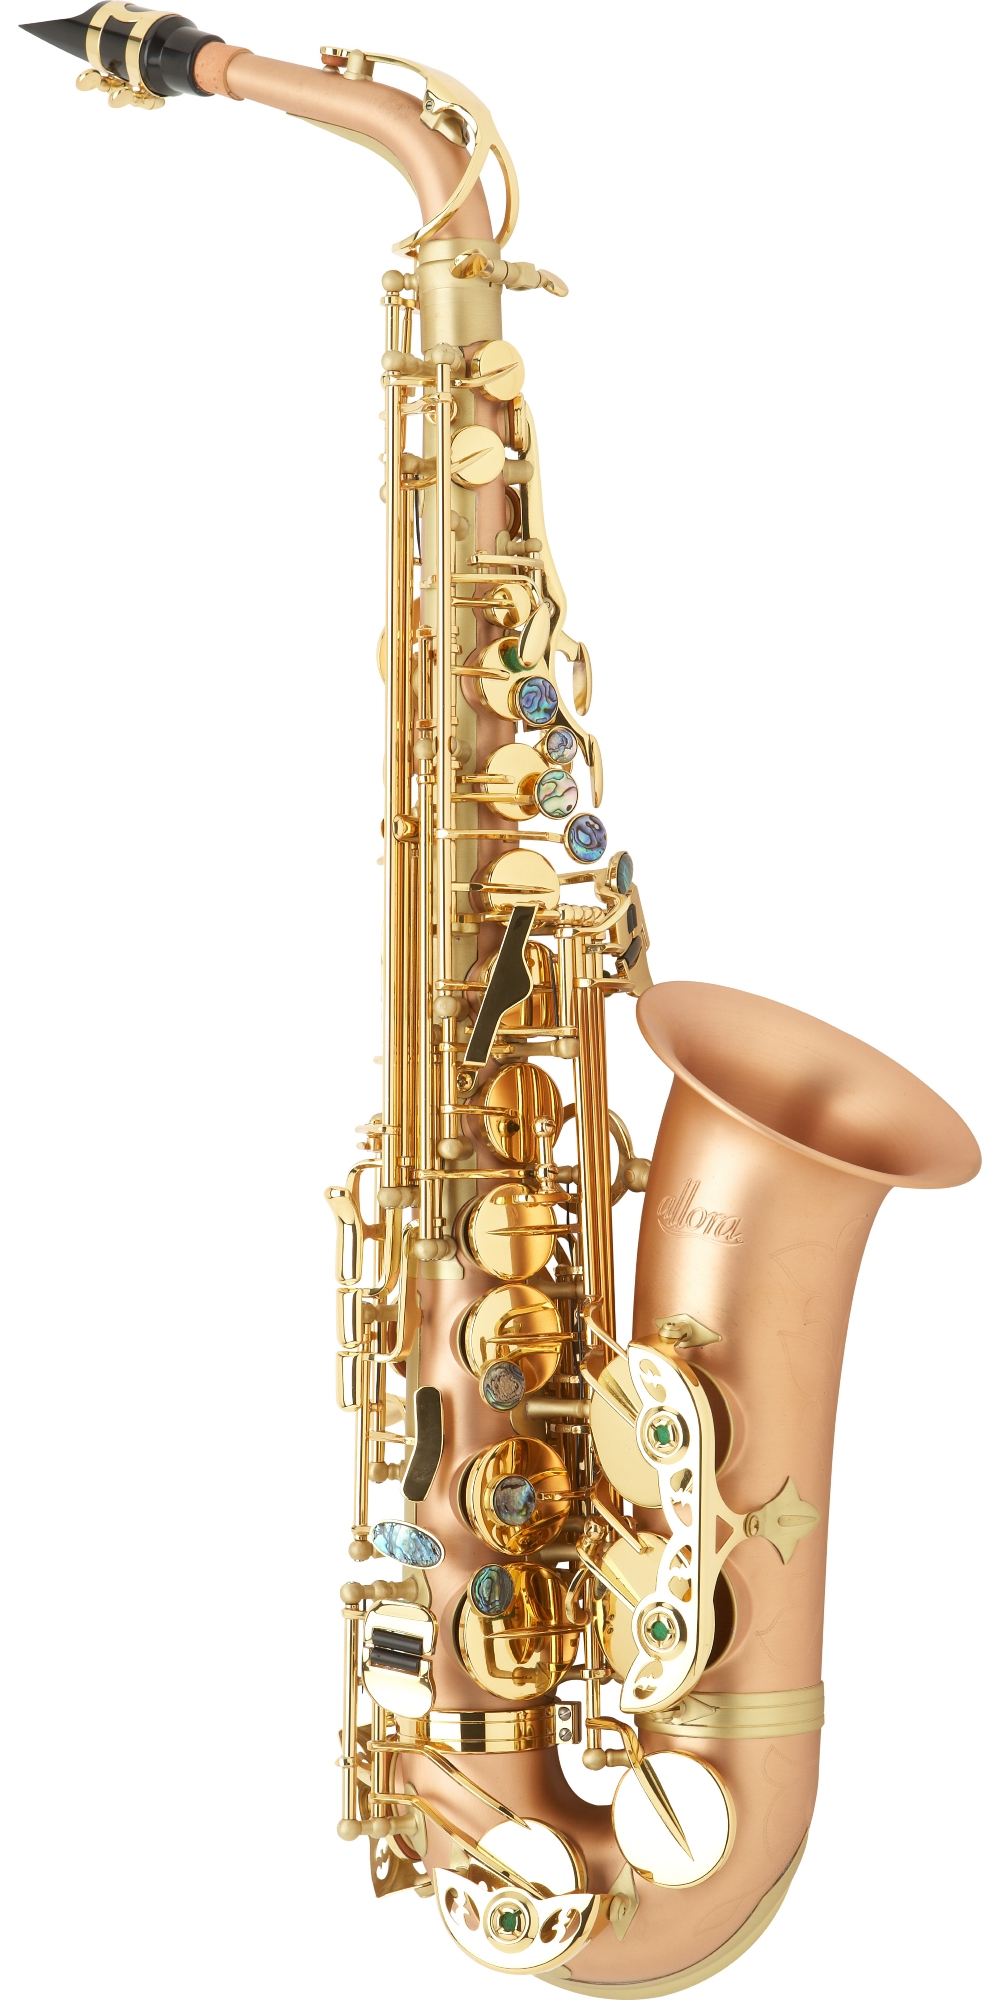 Allora Boss 2 Professional Alto Saxophone AAAS-908 Copper Body Brass Lacquer Keys by Allora